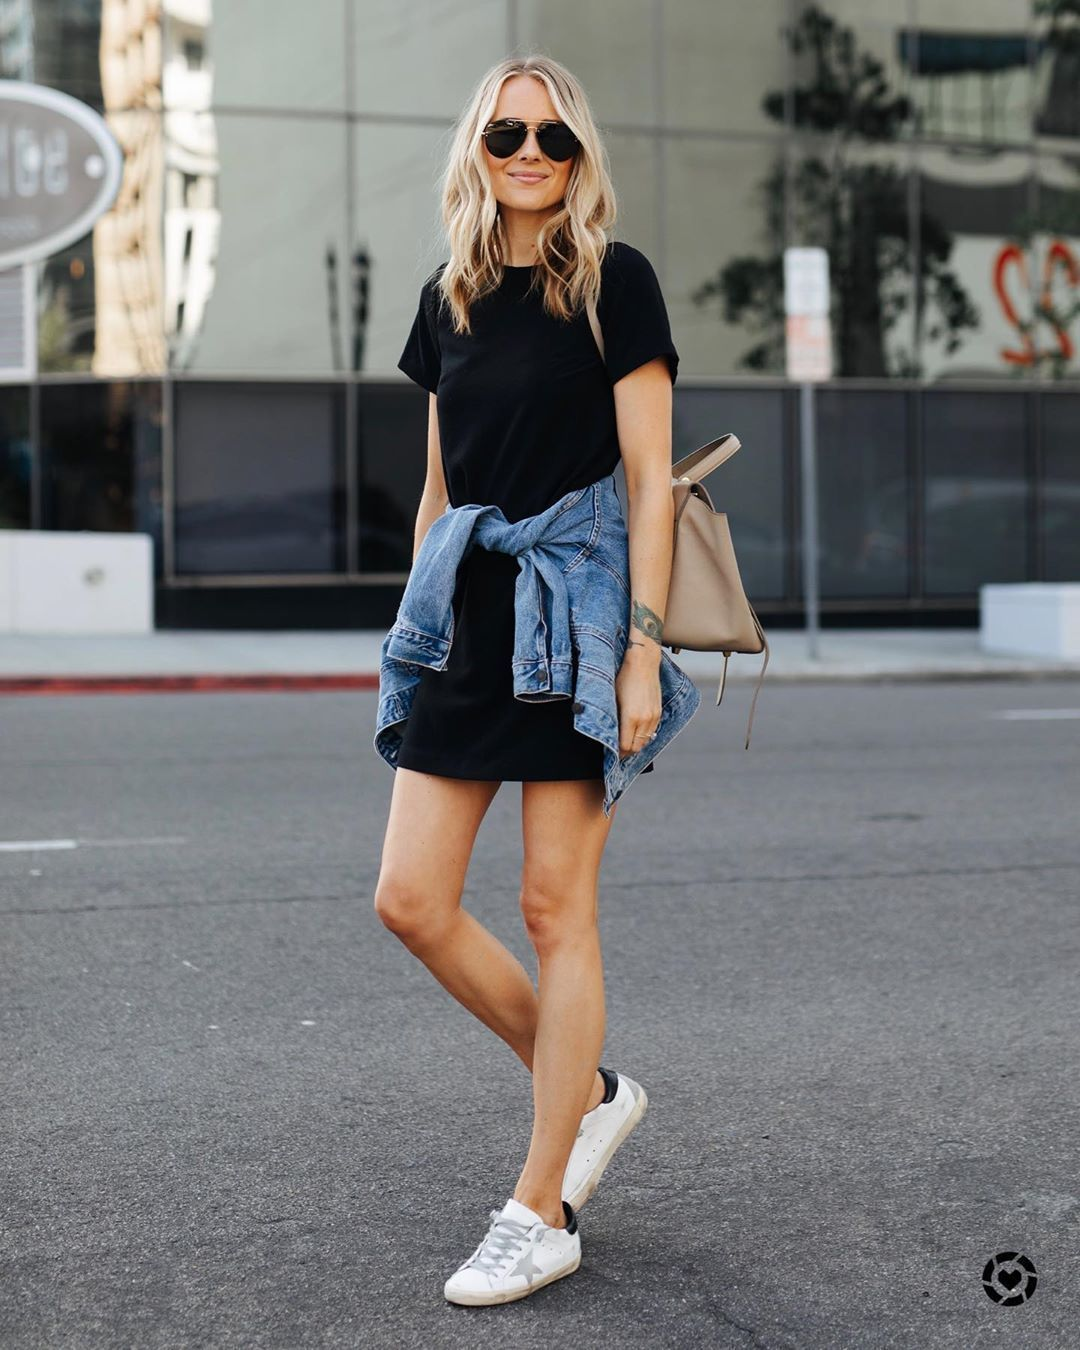 Get The Dress For 89 At M Shop Nordstrom Com Wheretoget Casual Dress Outfits Casual Summer Outfits Fashion Jackson [ 1350 x 1080 Pixel ]